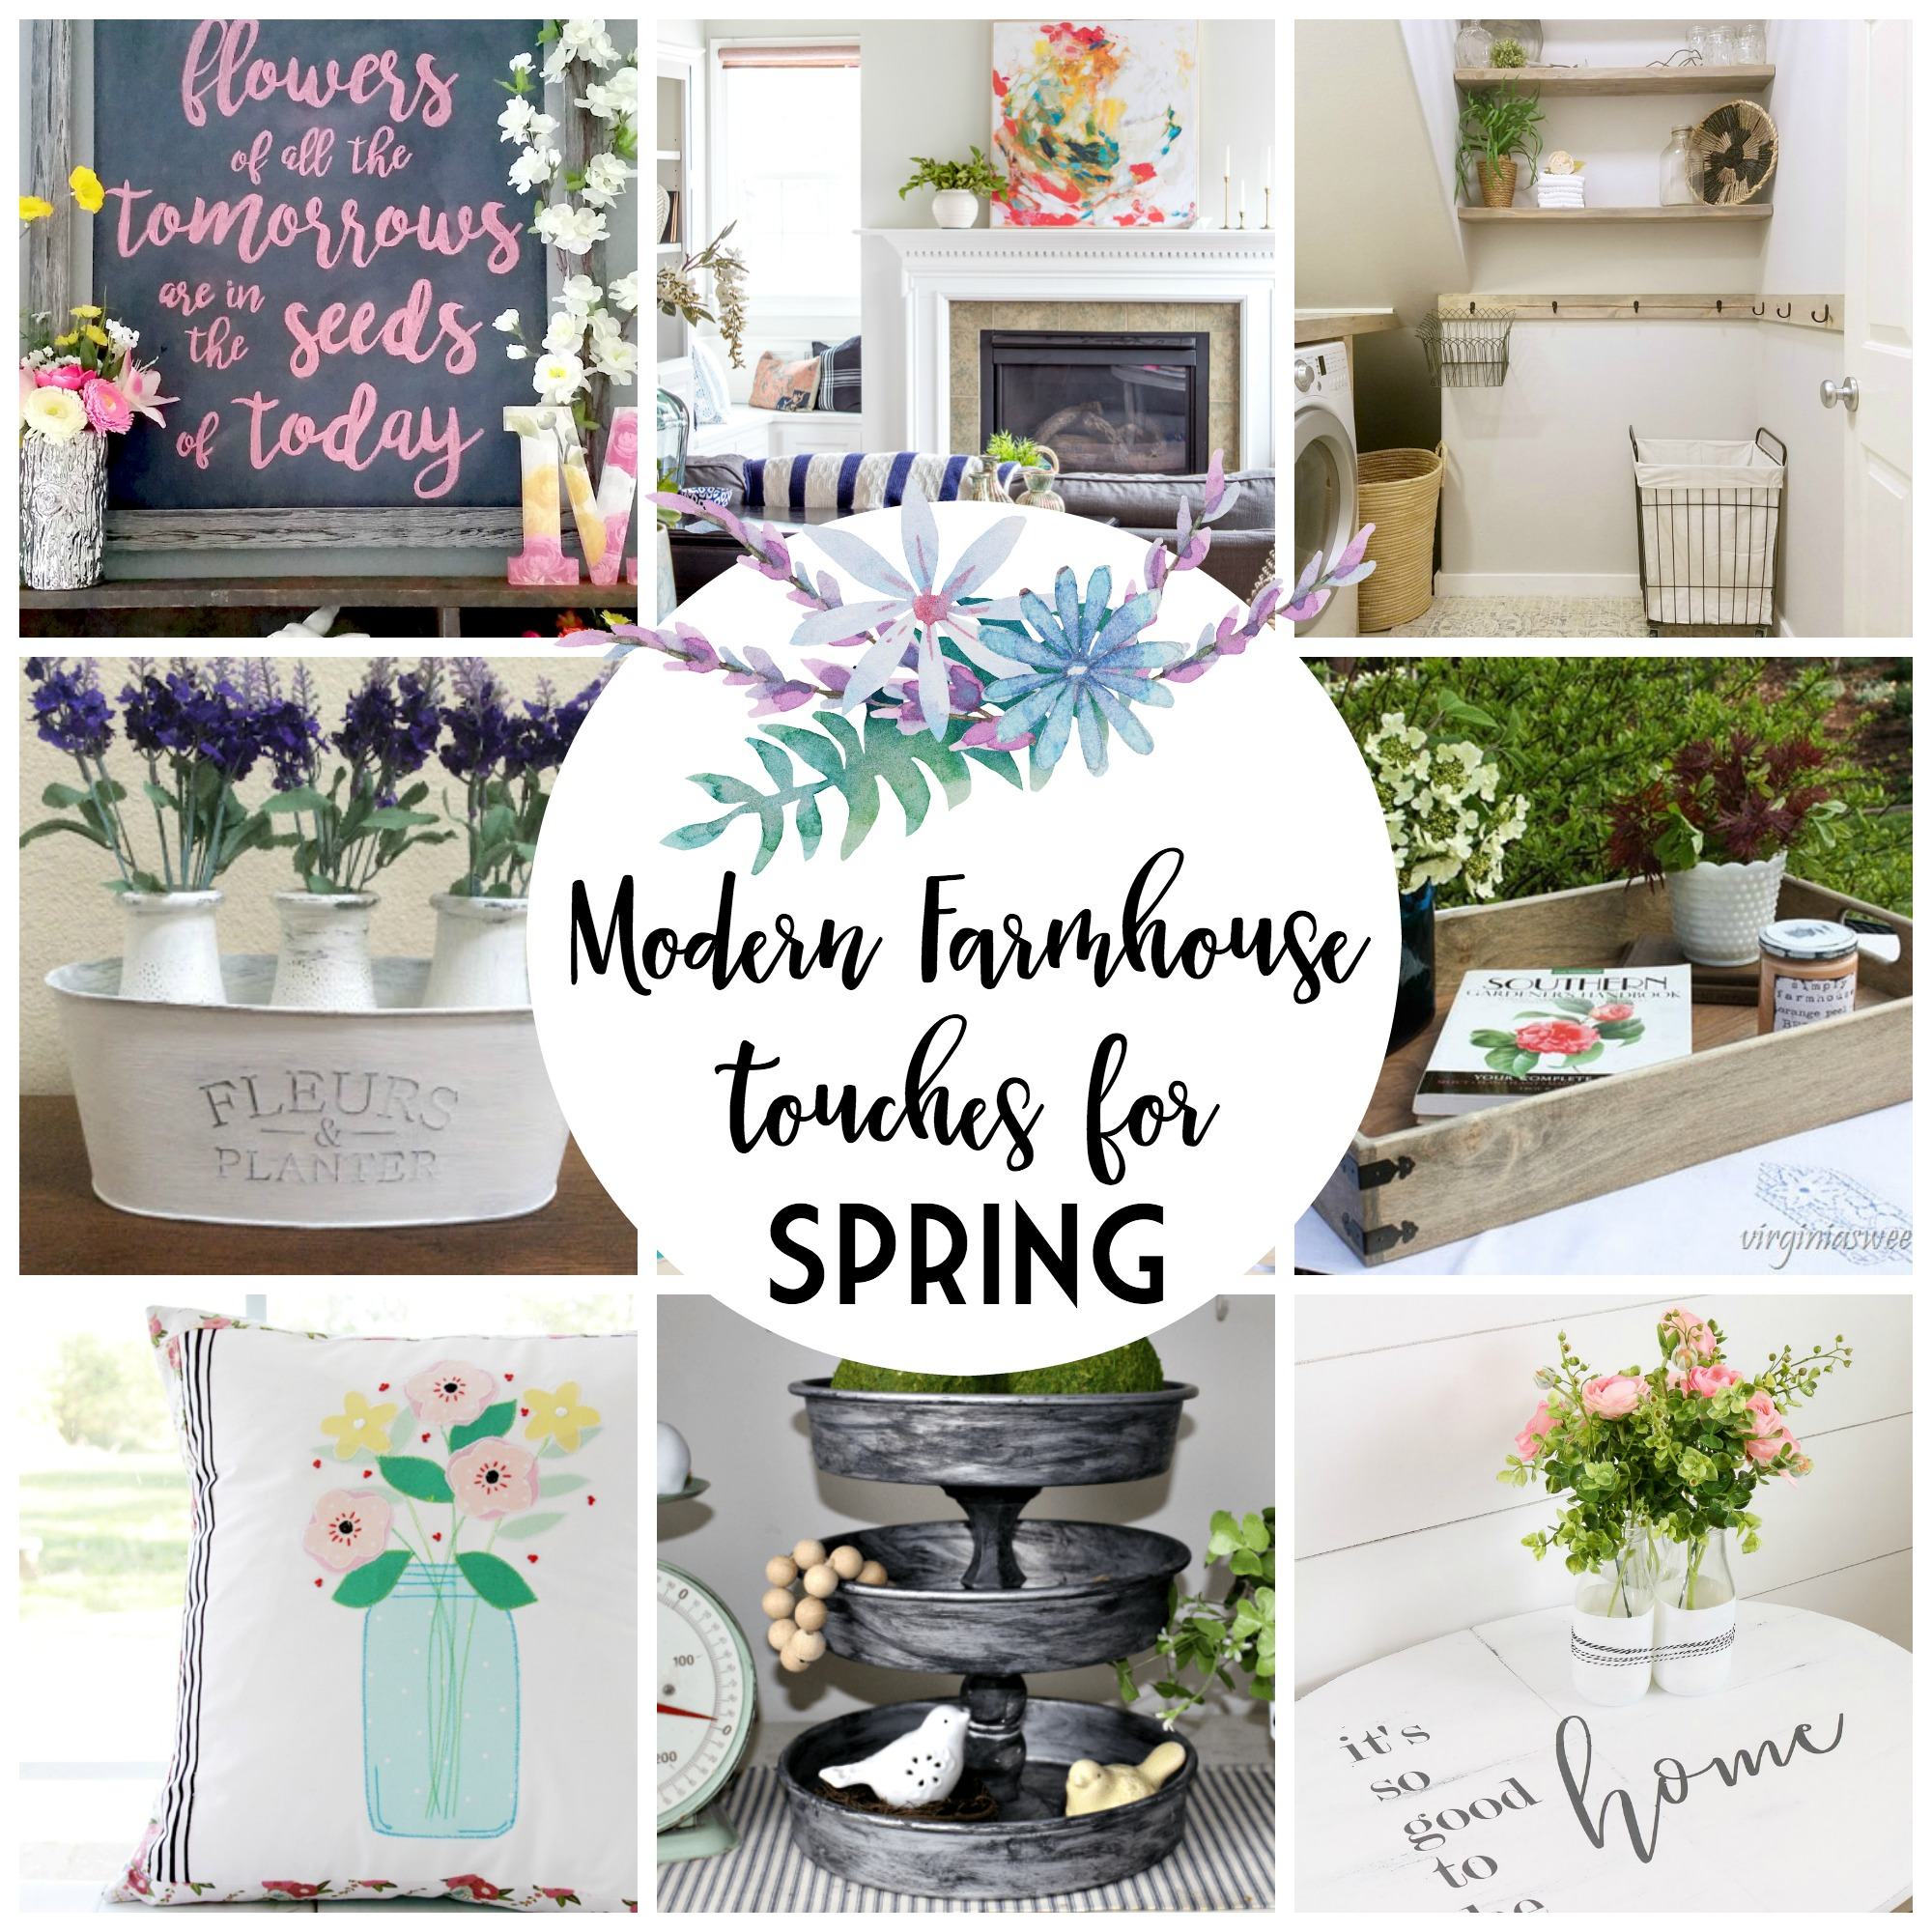 Modern Farmhouse Touches for Spring